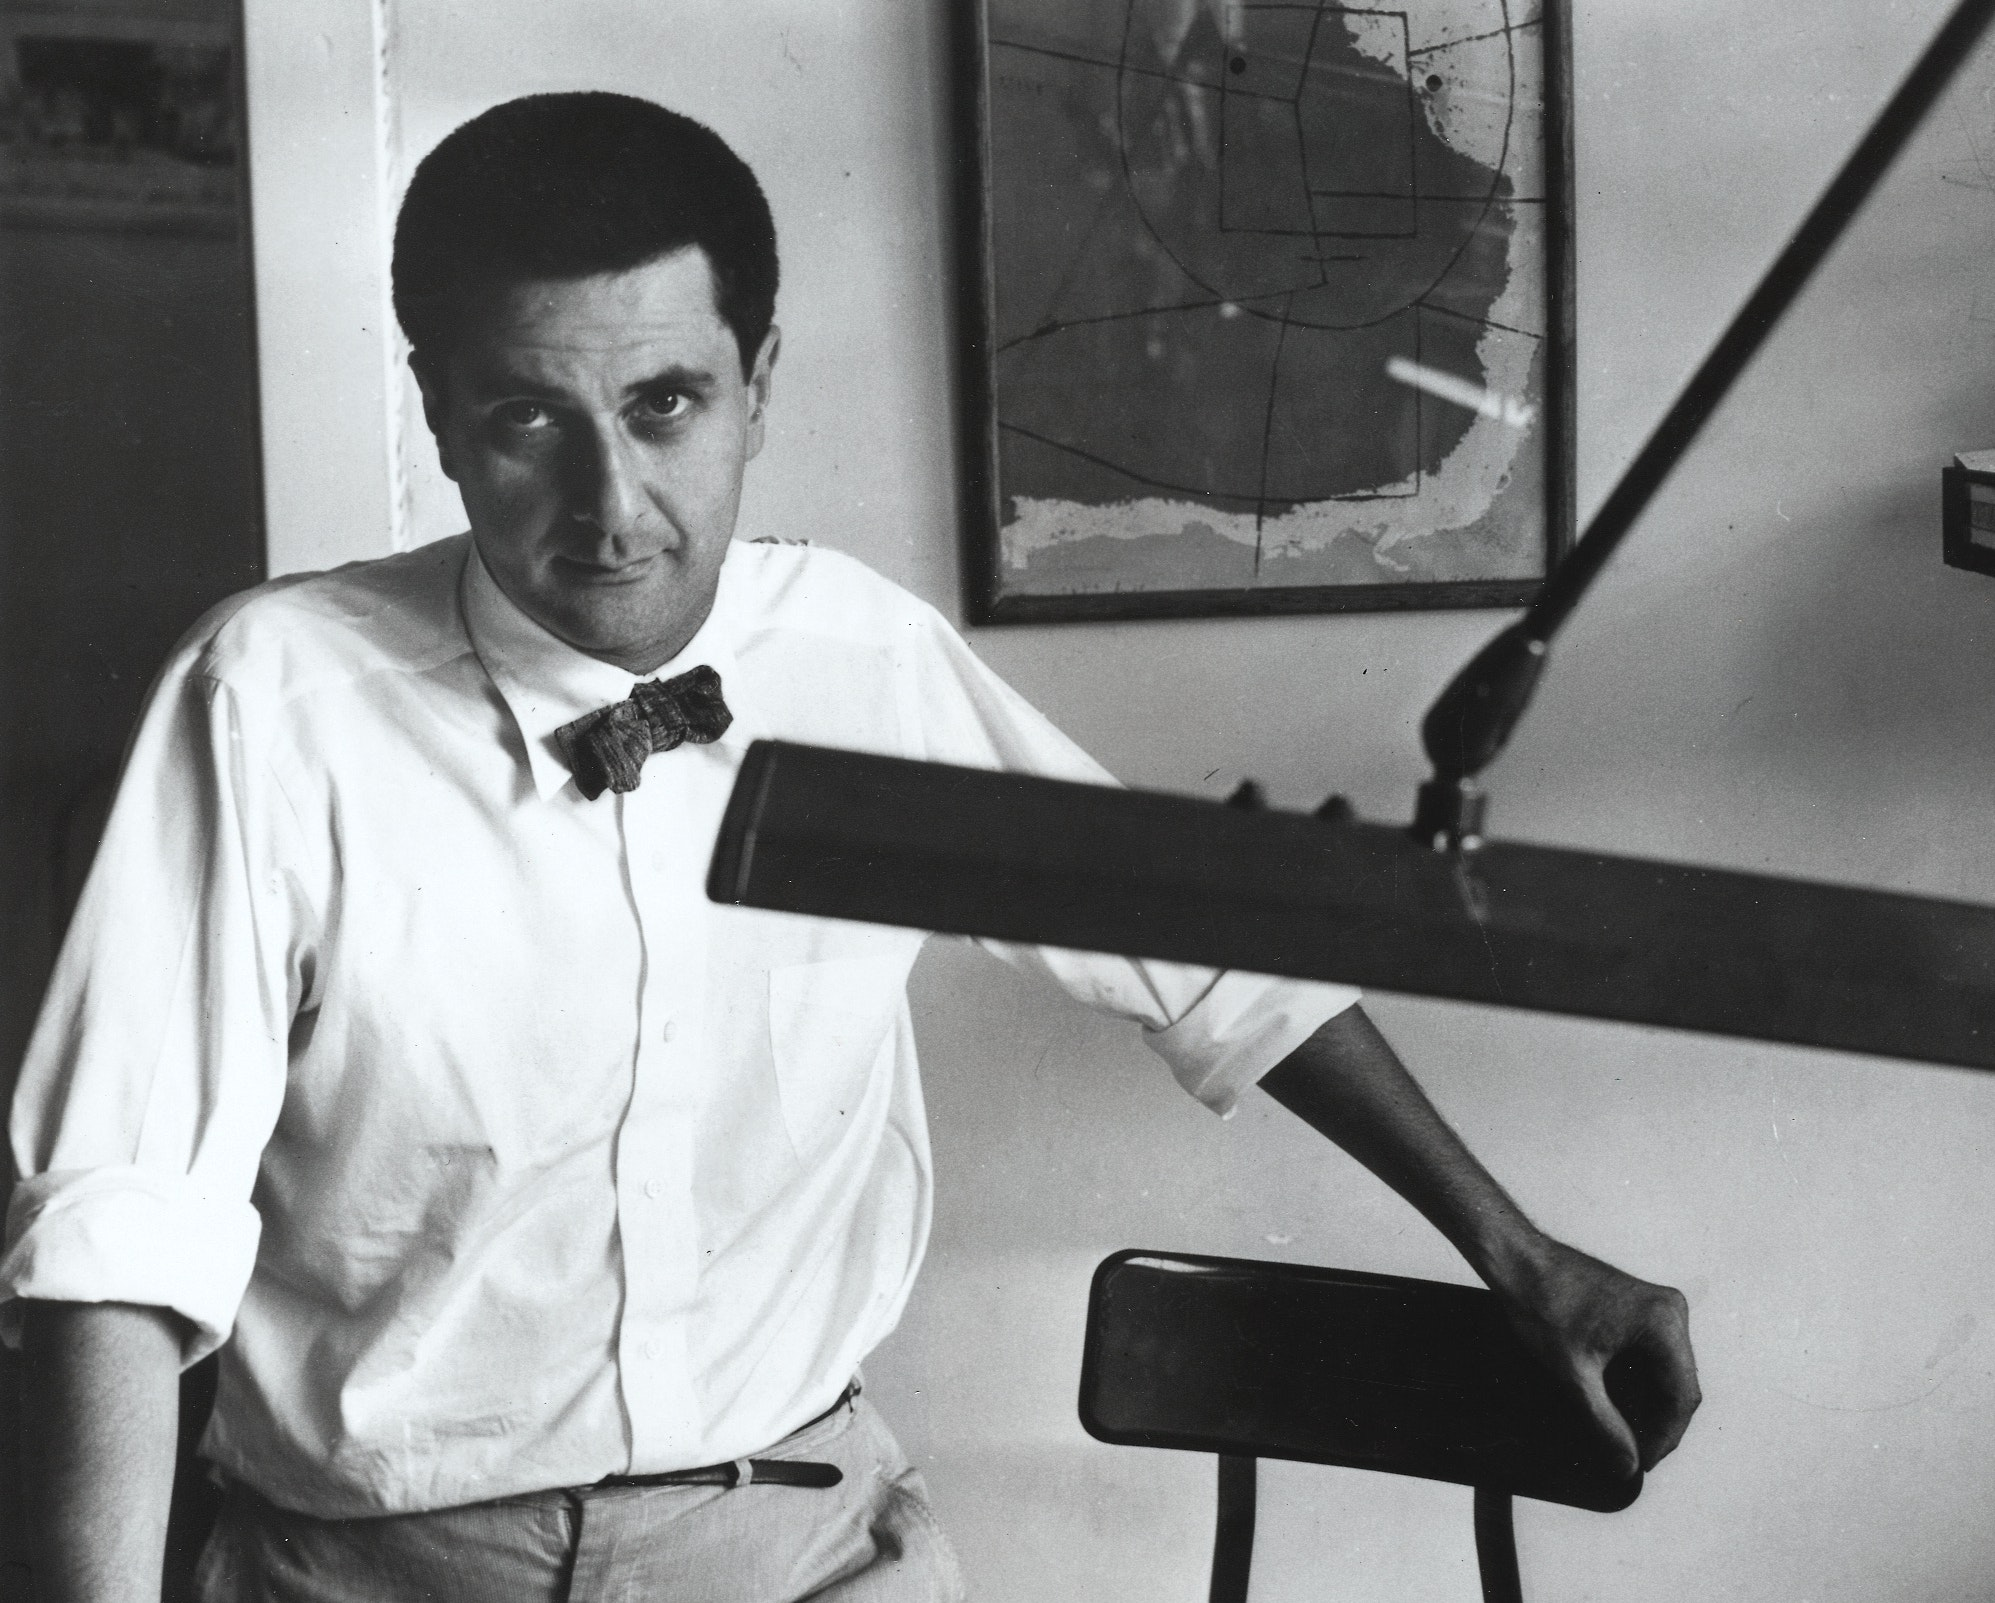 Black and white photo of Bertrand posing with architecture plans at a desk